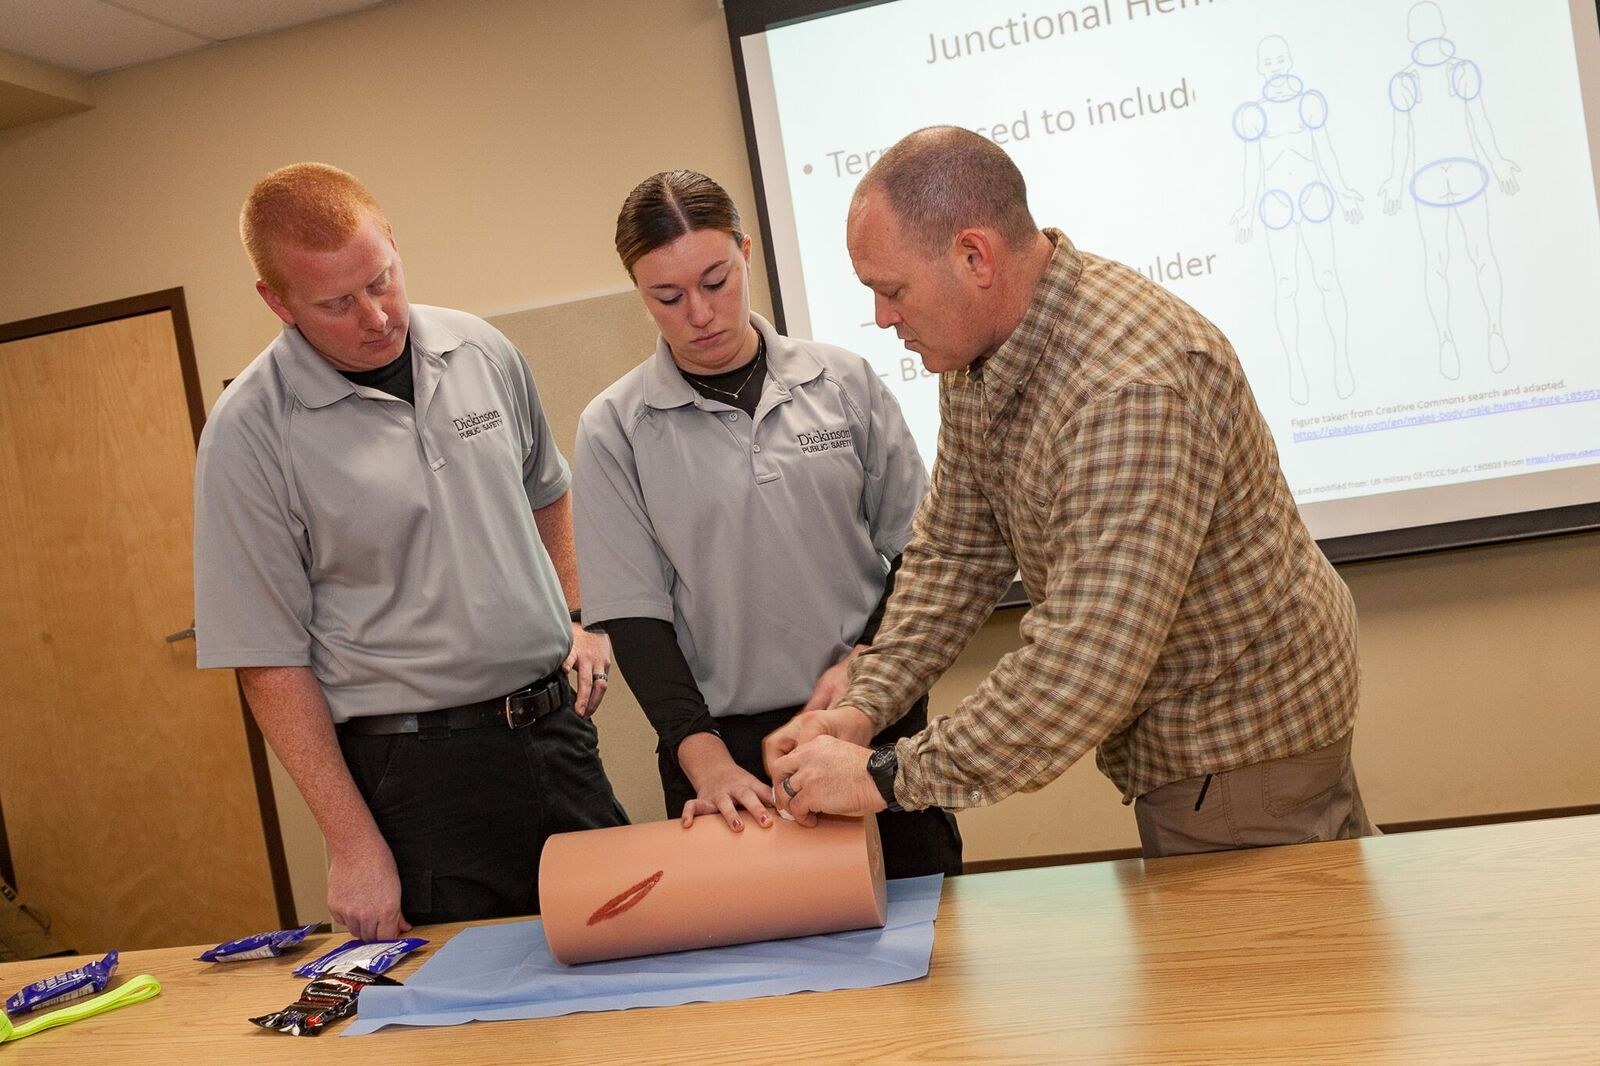 Military Science Instructor John Haiduck (right) instructs two Dickinson Public Safety officers on wound-packing technique during a recent training session for local first responders.